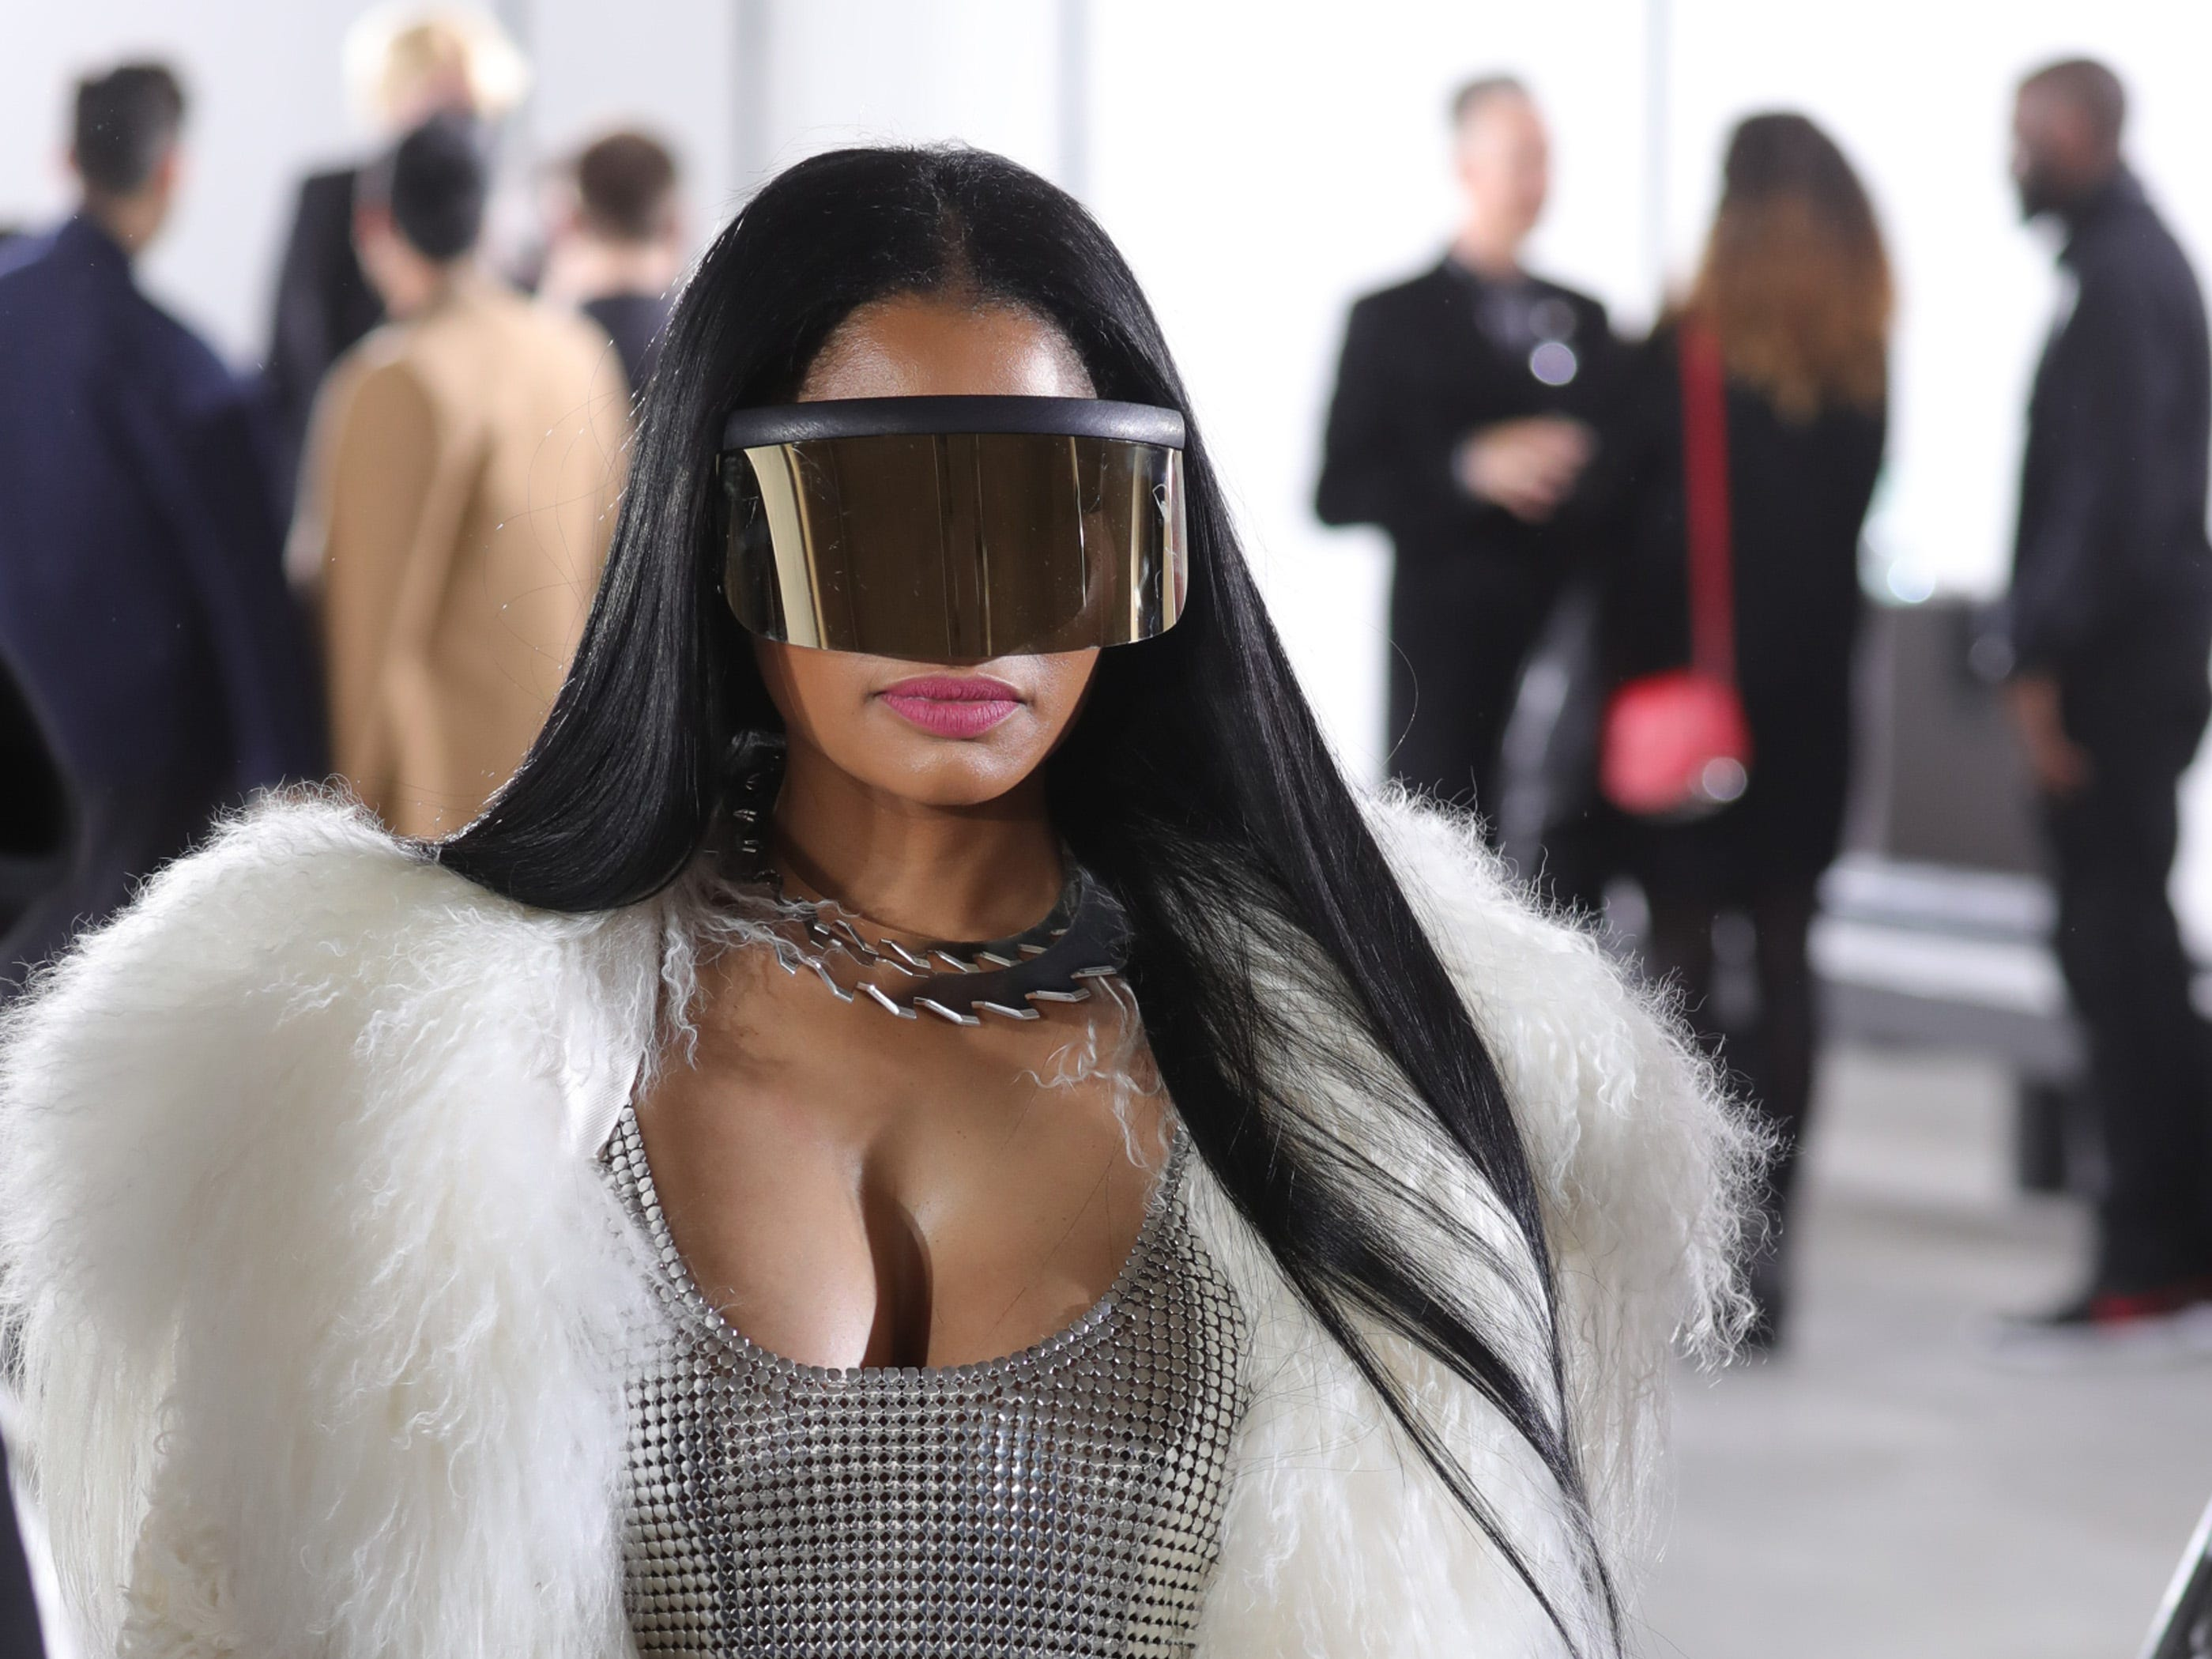 PARIS, FRANCE - MARCH 02:  Nicki Minaj attends the Rick Owens show as part of the Paris Fashion Week Womenswear Fall/Winter 2017/2018 on March 2, 2017 in Paris, France.  (Photo by Antonio de Moraes Barros Filho/WireImage) ORG XMIT: 700006840 ORIG FILE ID: 647185498